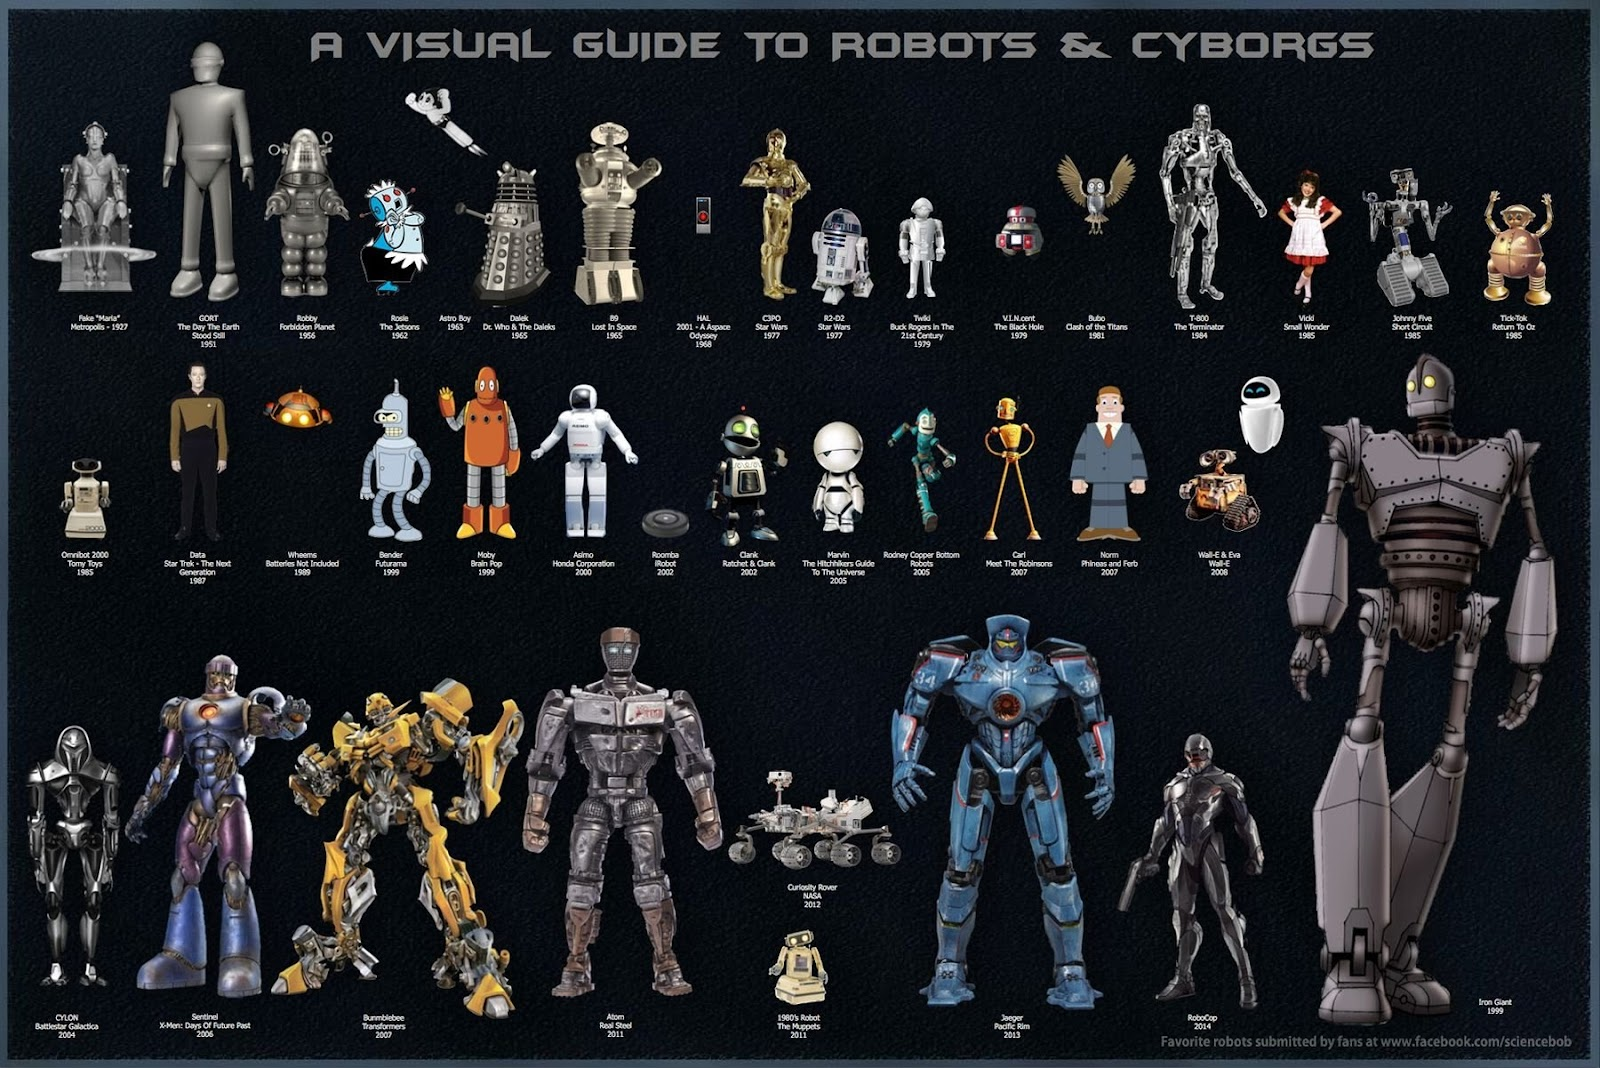 A Visual Guide to Robots & Cyborgs